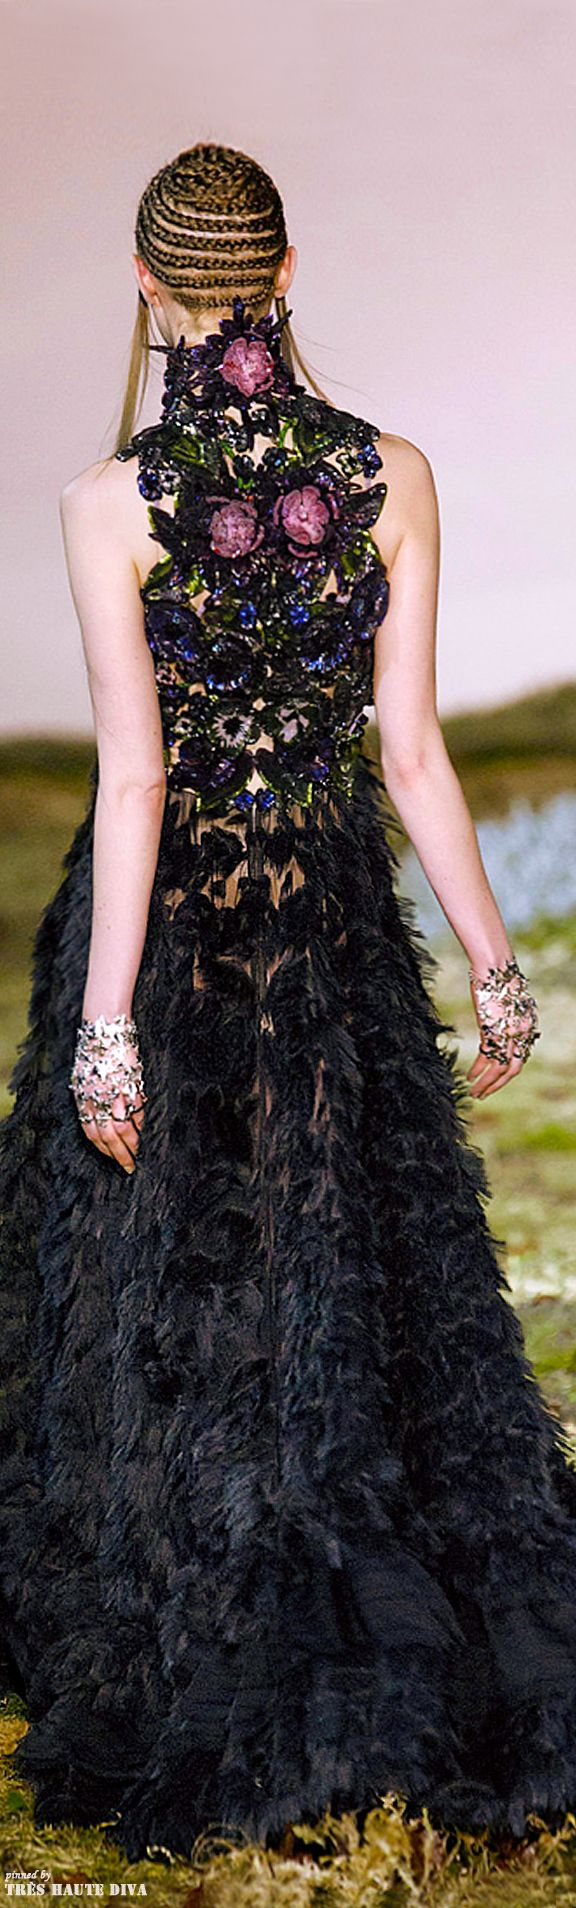 340 best images about alexander mcqueen on pinterest for Mac alexander mcqueen